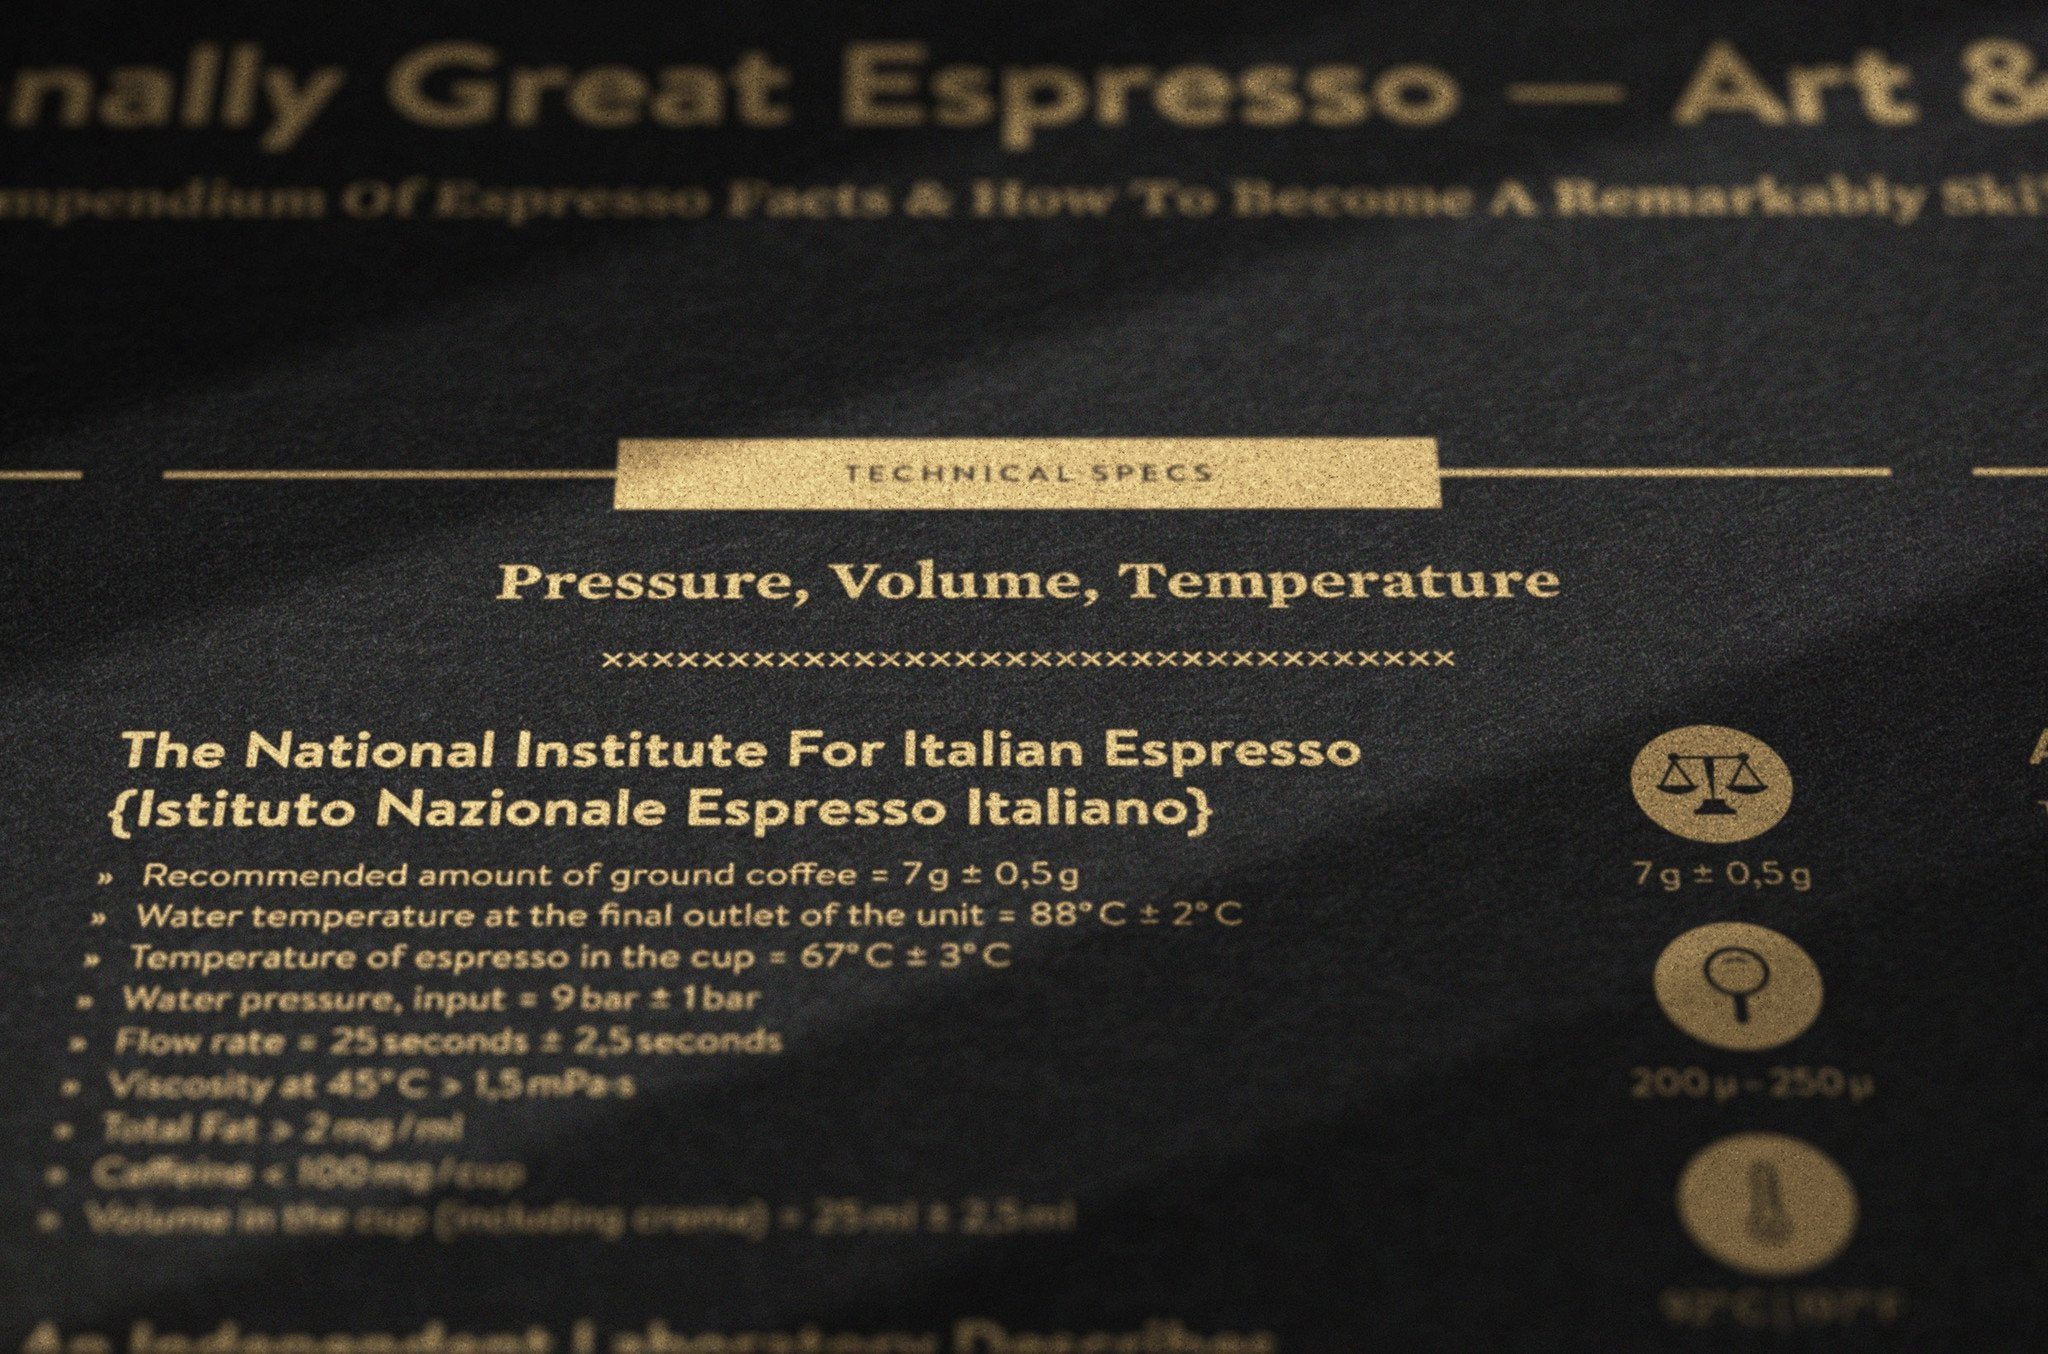 Exceptionally Great Espresso — Art & Science